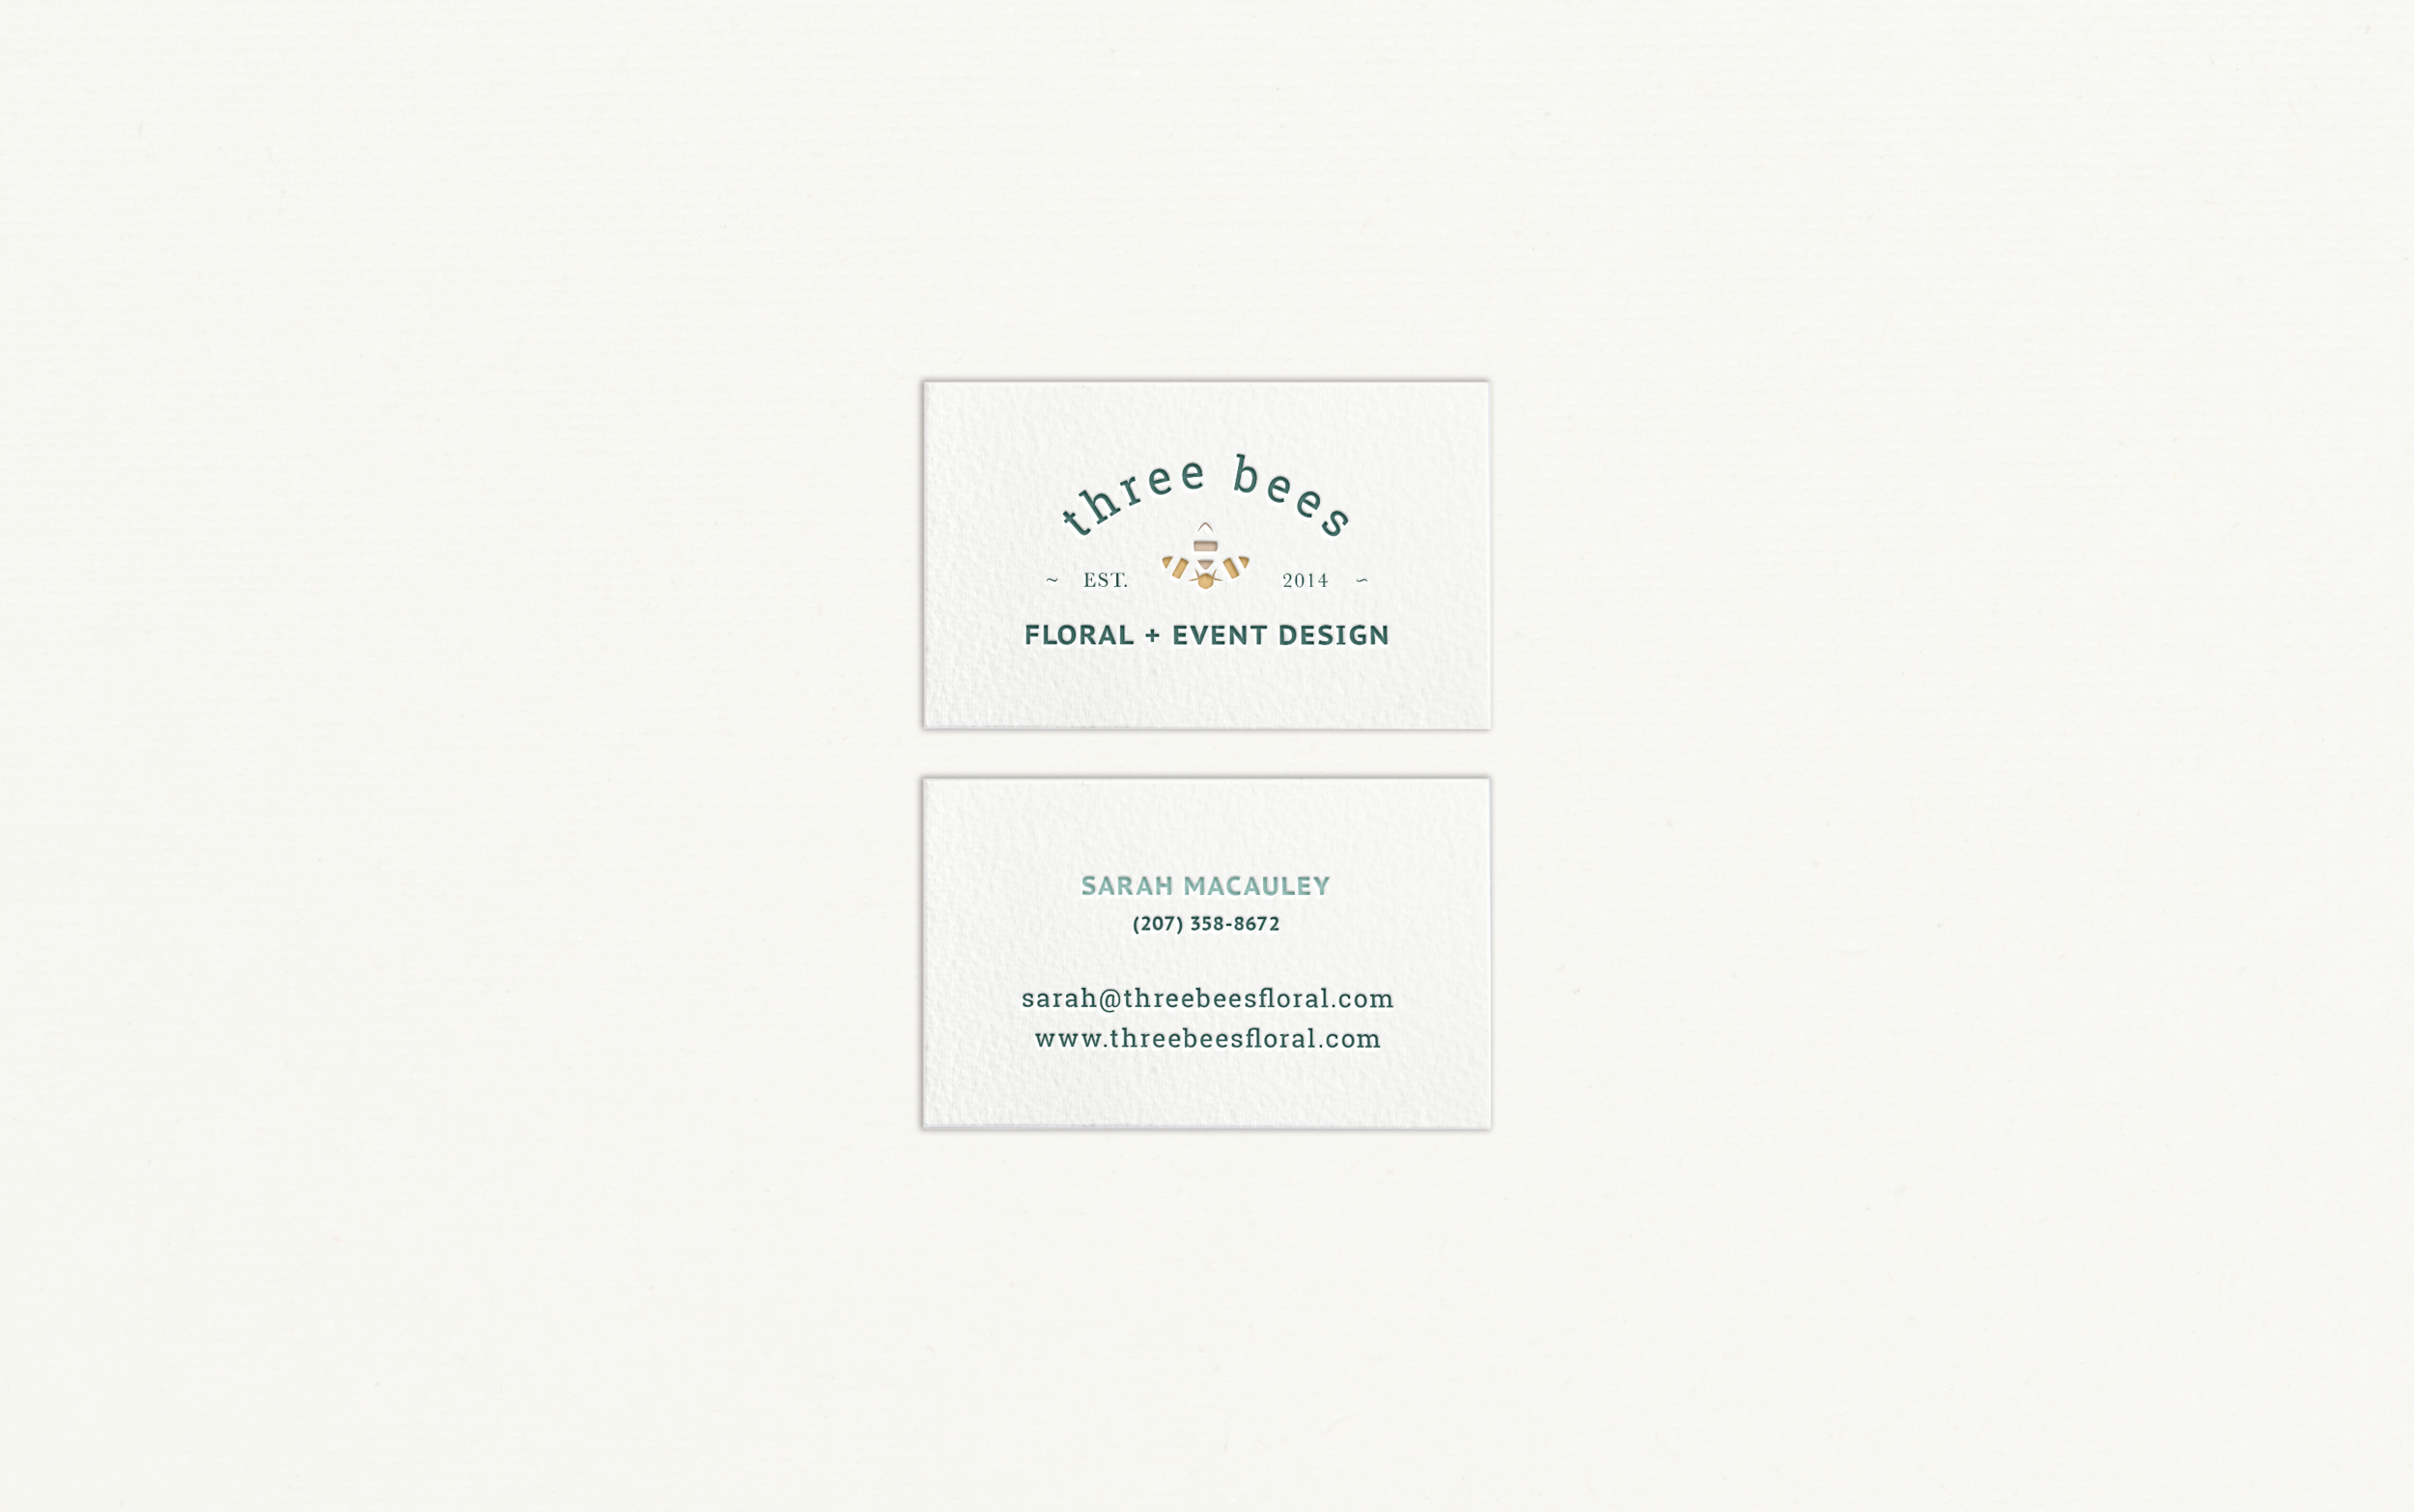 Three Bees Business Card Revised 3.png